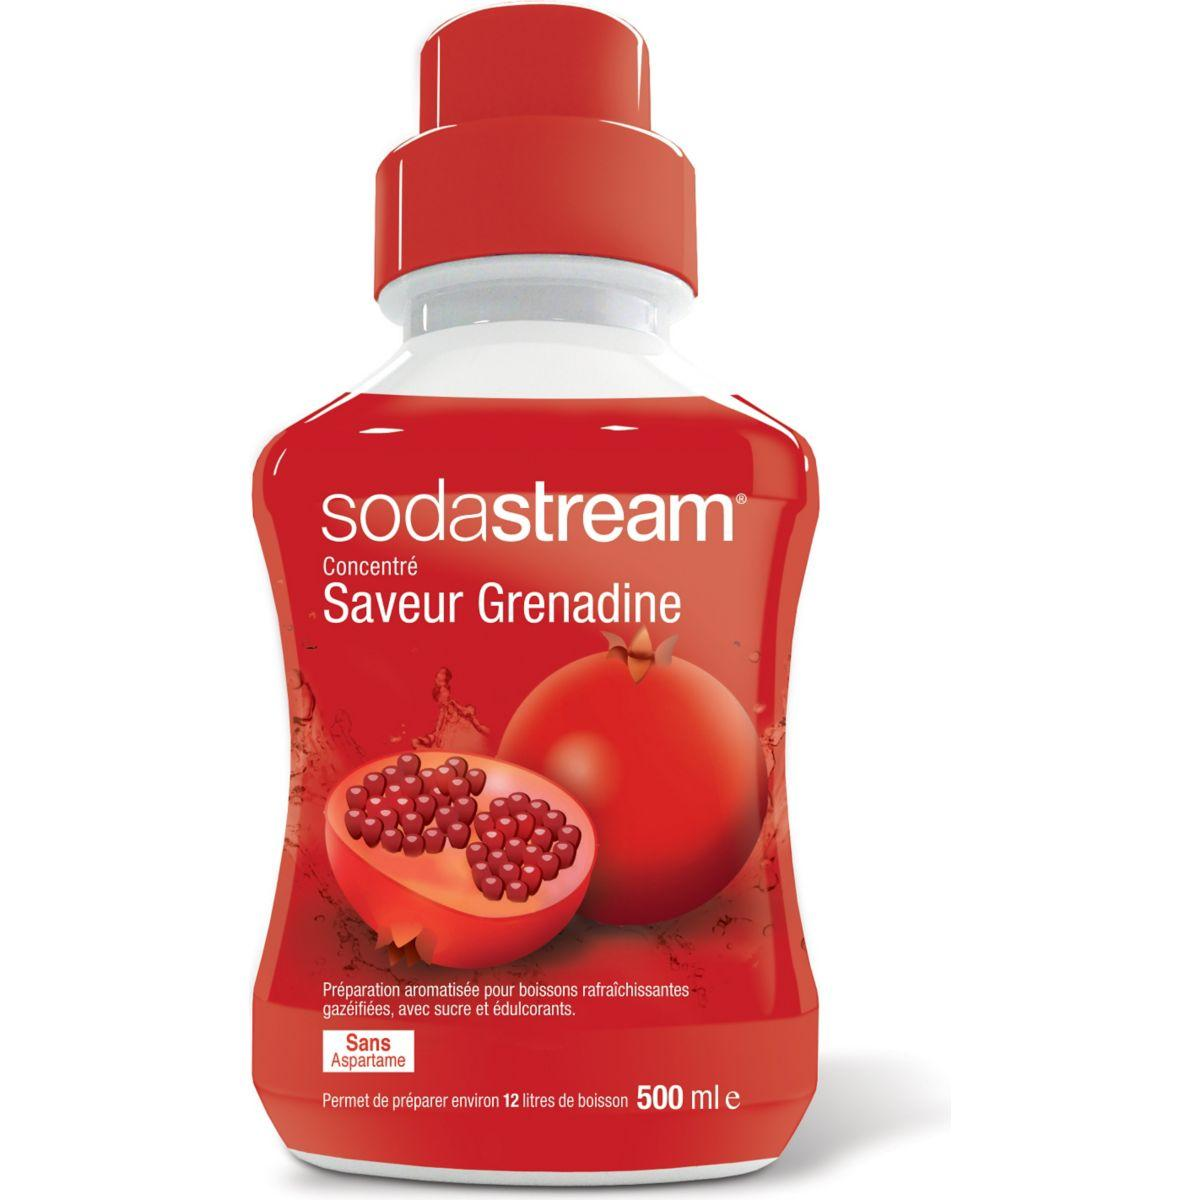 sodastream achat vente de sodastream pas cher. Black Bedroom Furniture Sets. Home Design Ideas